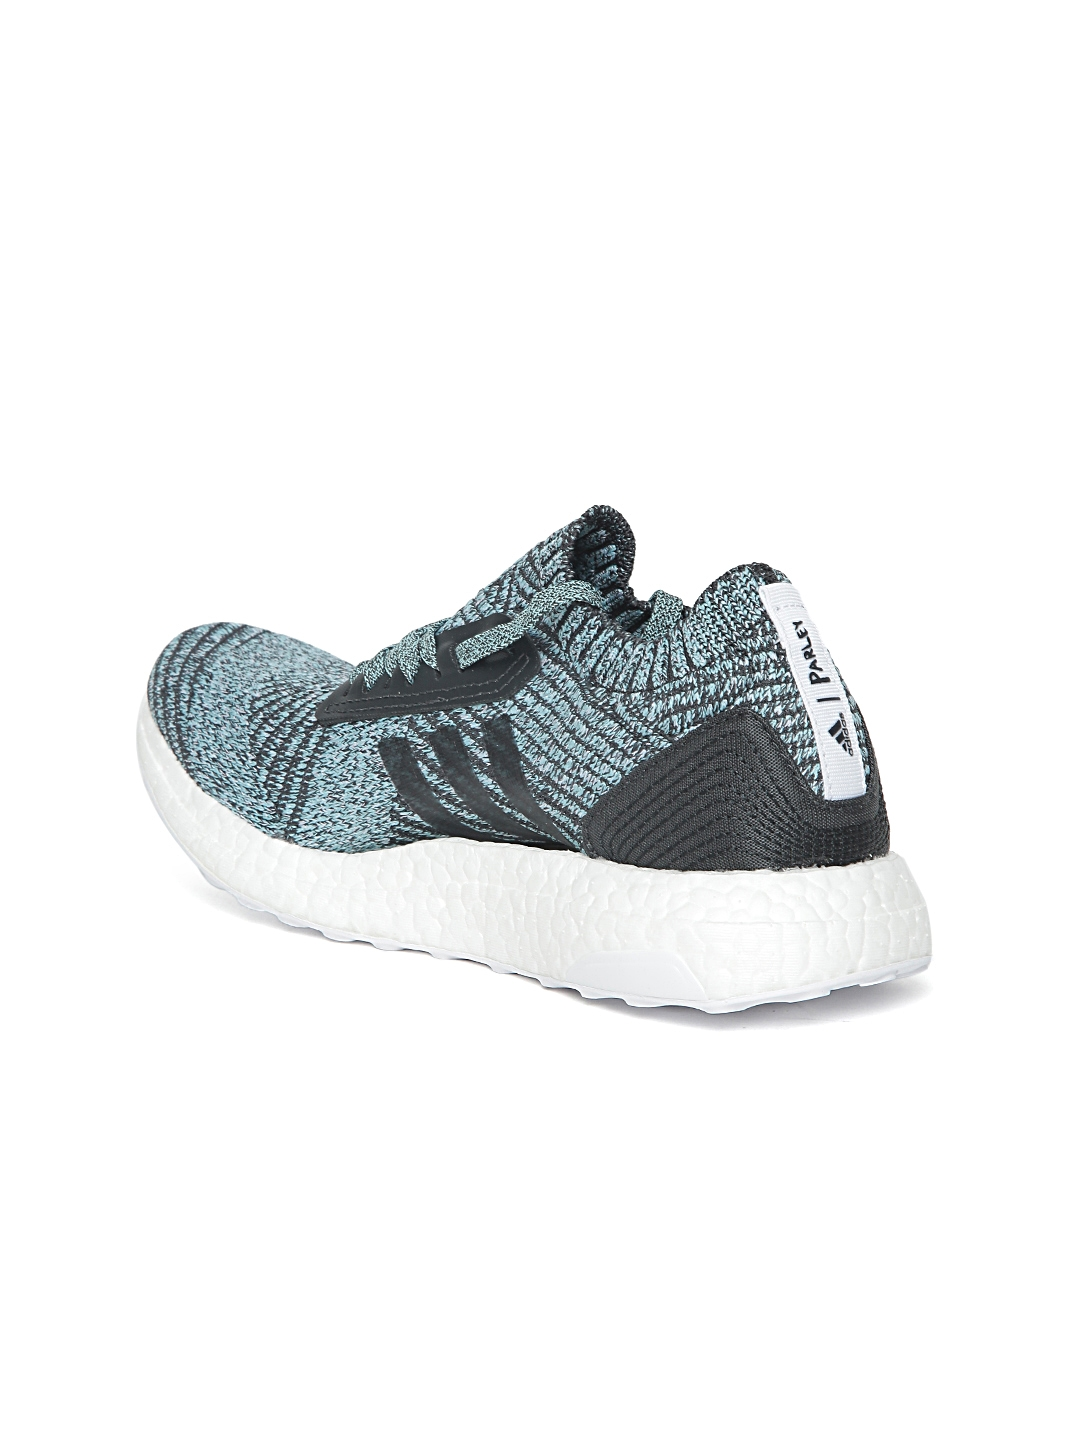 outlet store bf70b 60203 Buy ADIDAS Women Blue & Black ULTRABOOST X PARLEY Running Shoes ...